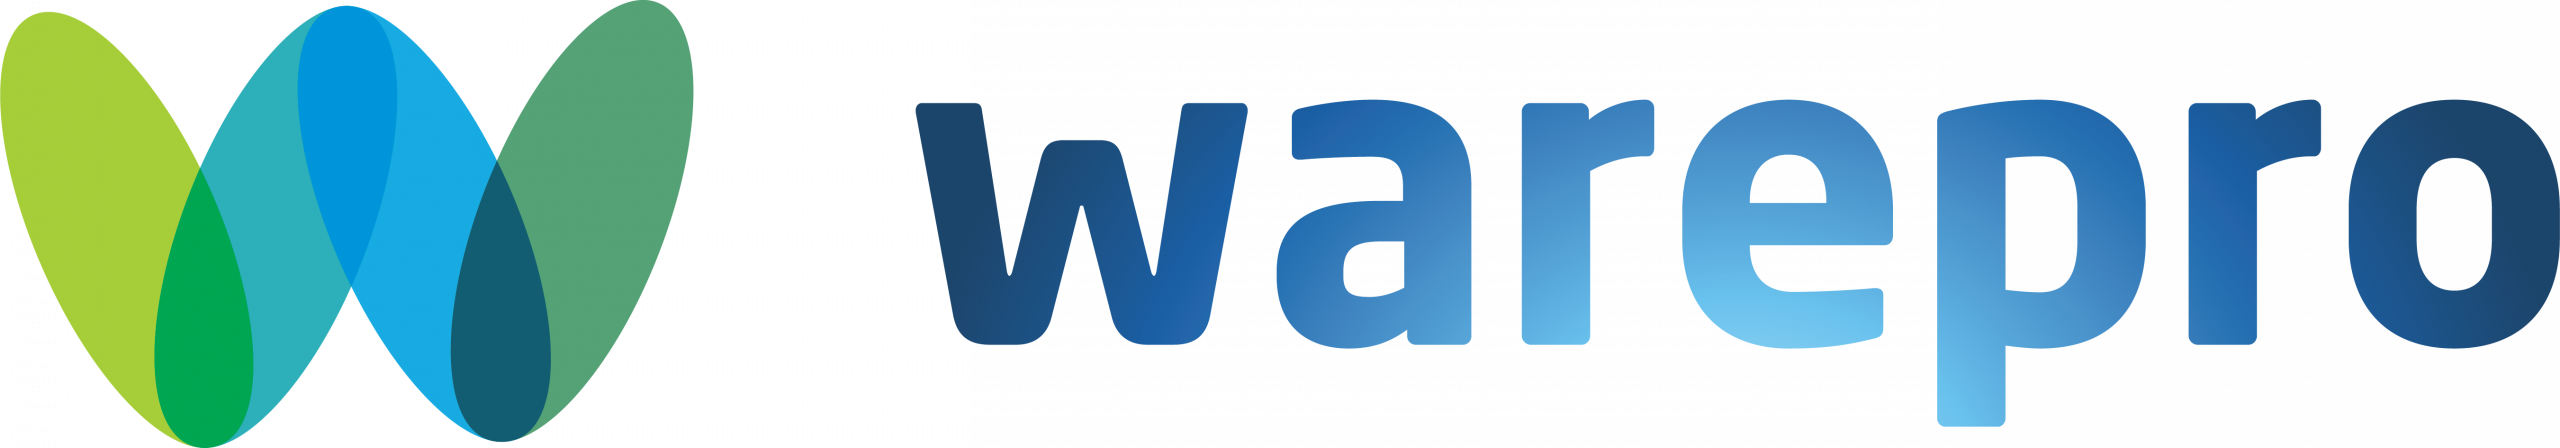 Warepro - Software e Hardware